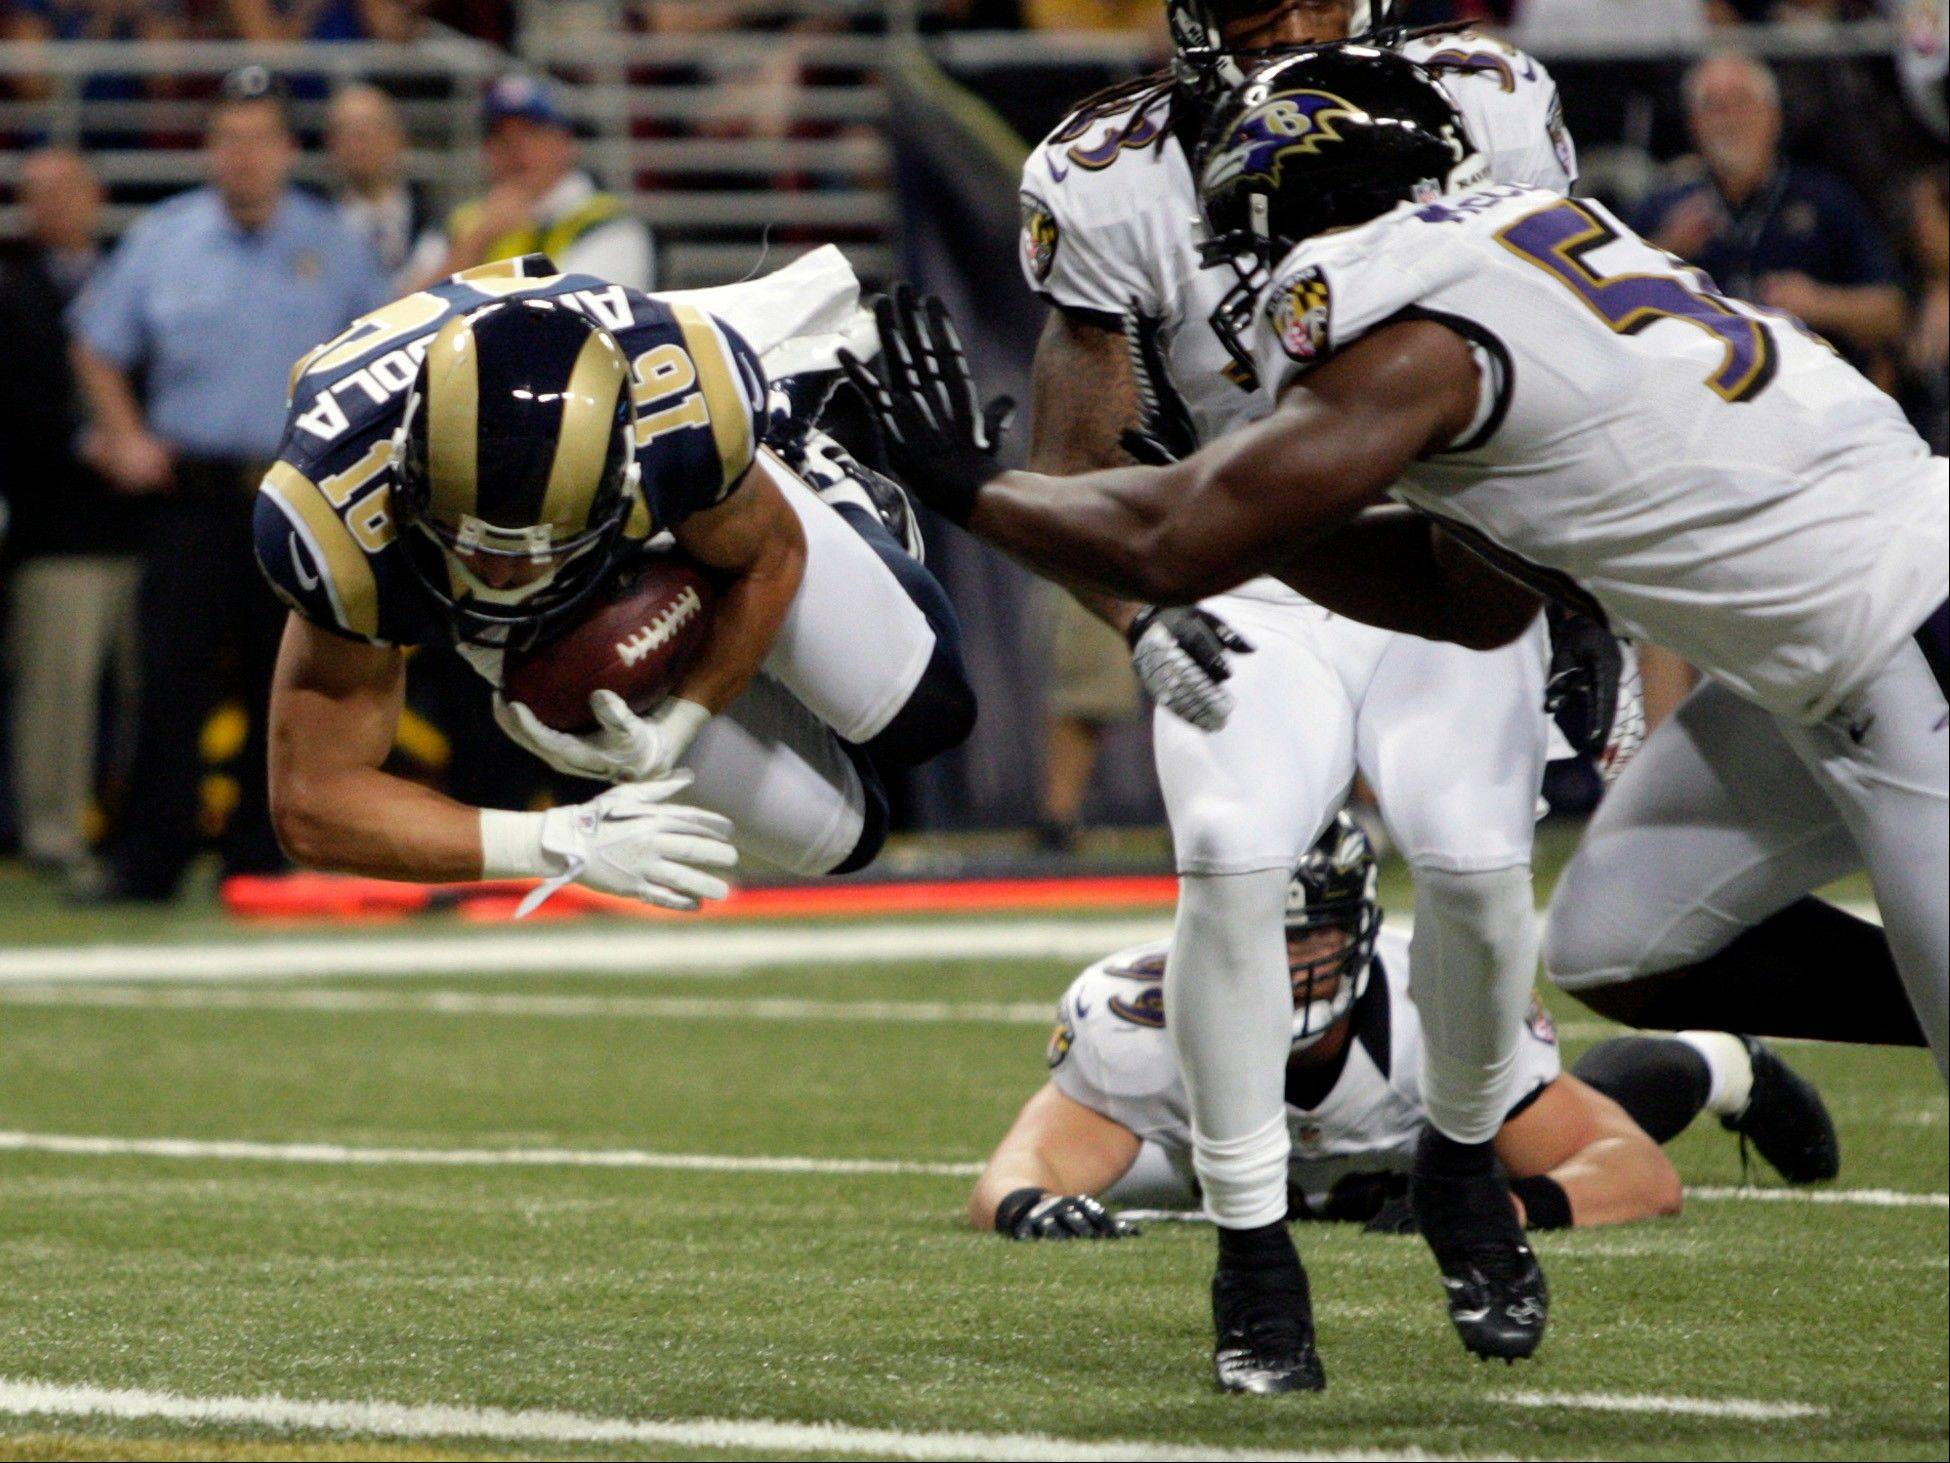 St. Louis Rams wide receiver Danny Amendola dives into the end zone past Baltimore Ravens linebacker Albert McClellan after catching a 7-yard pass for a touchdown during the first quarter of a preseason game Thursday in St. Louis.